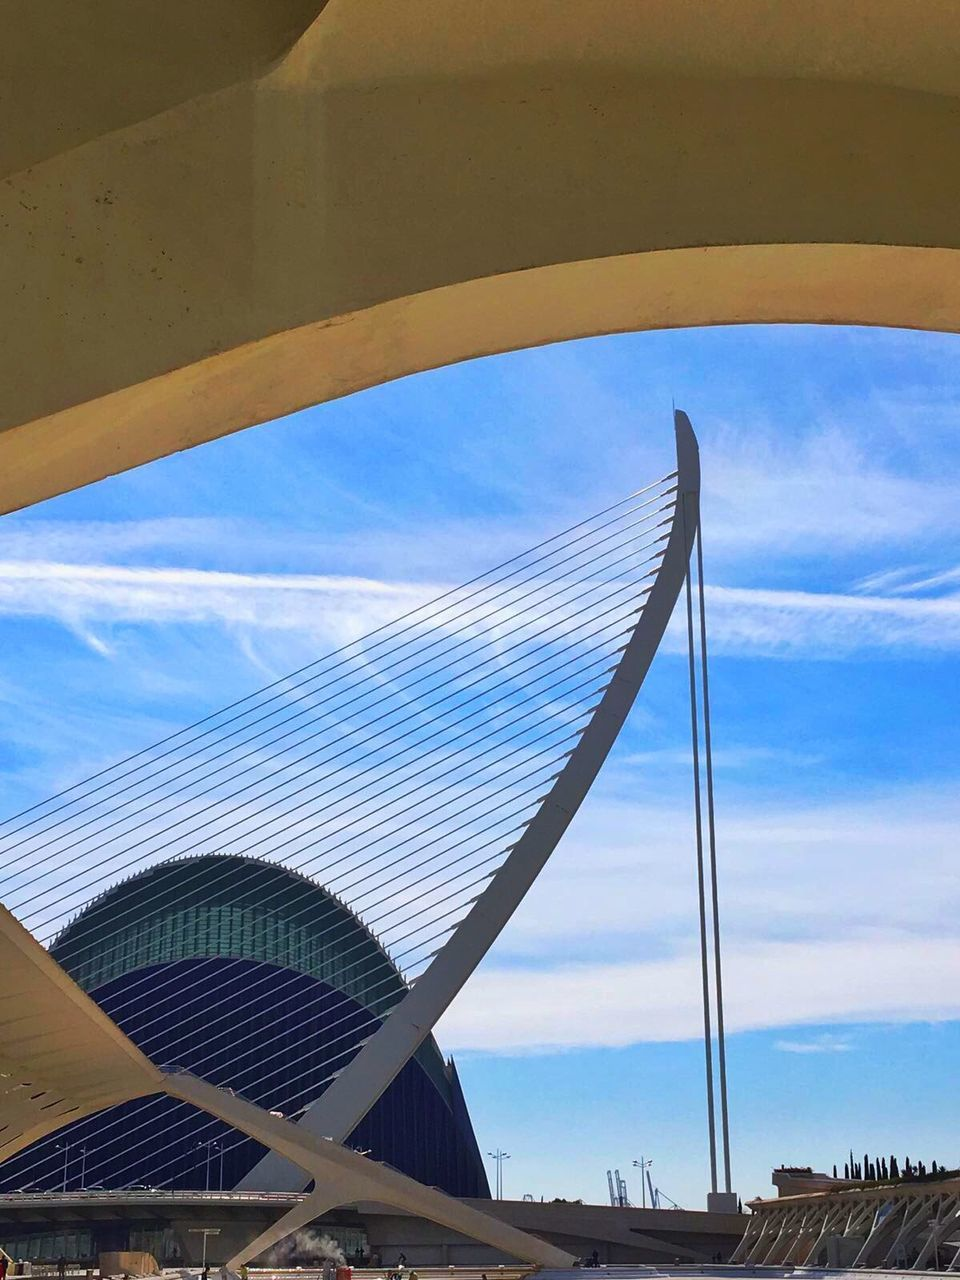 sky, blue, no people, day, built structure, low angle view, architecture, outdoors, cloud - sky, building exterior, nature